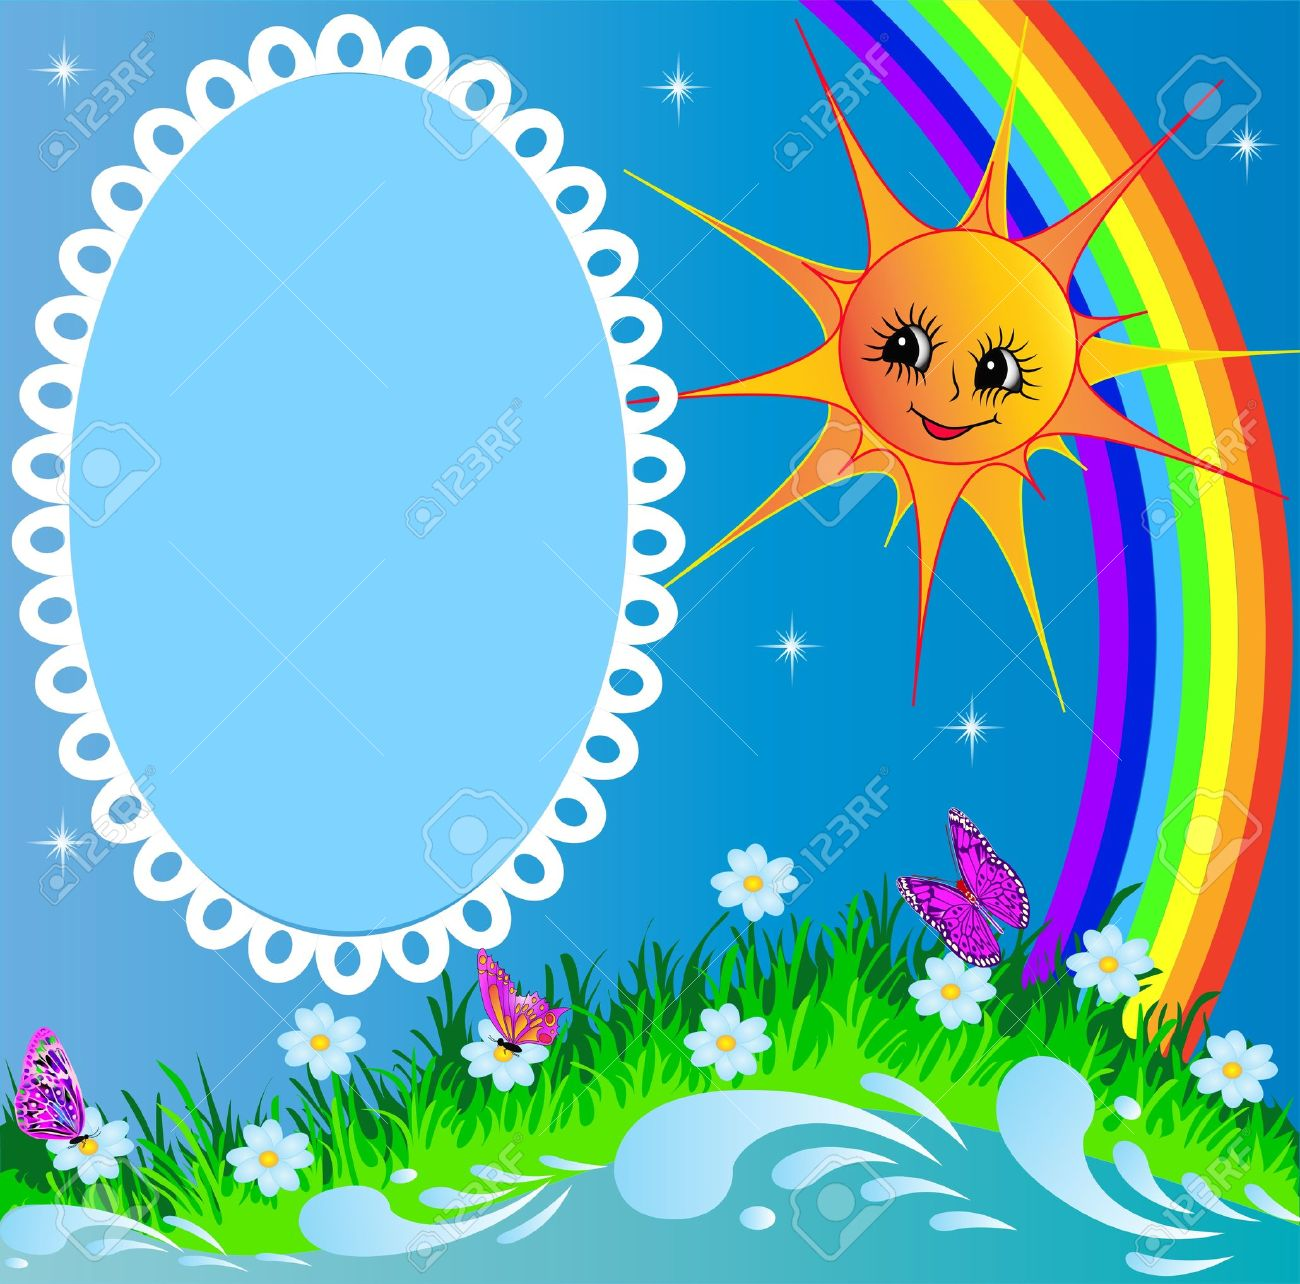 Illustration Frame With Sun Butterfly And Rainbow Stock Vector